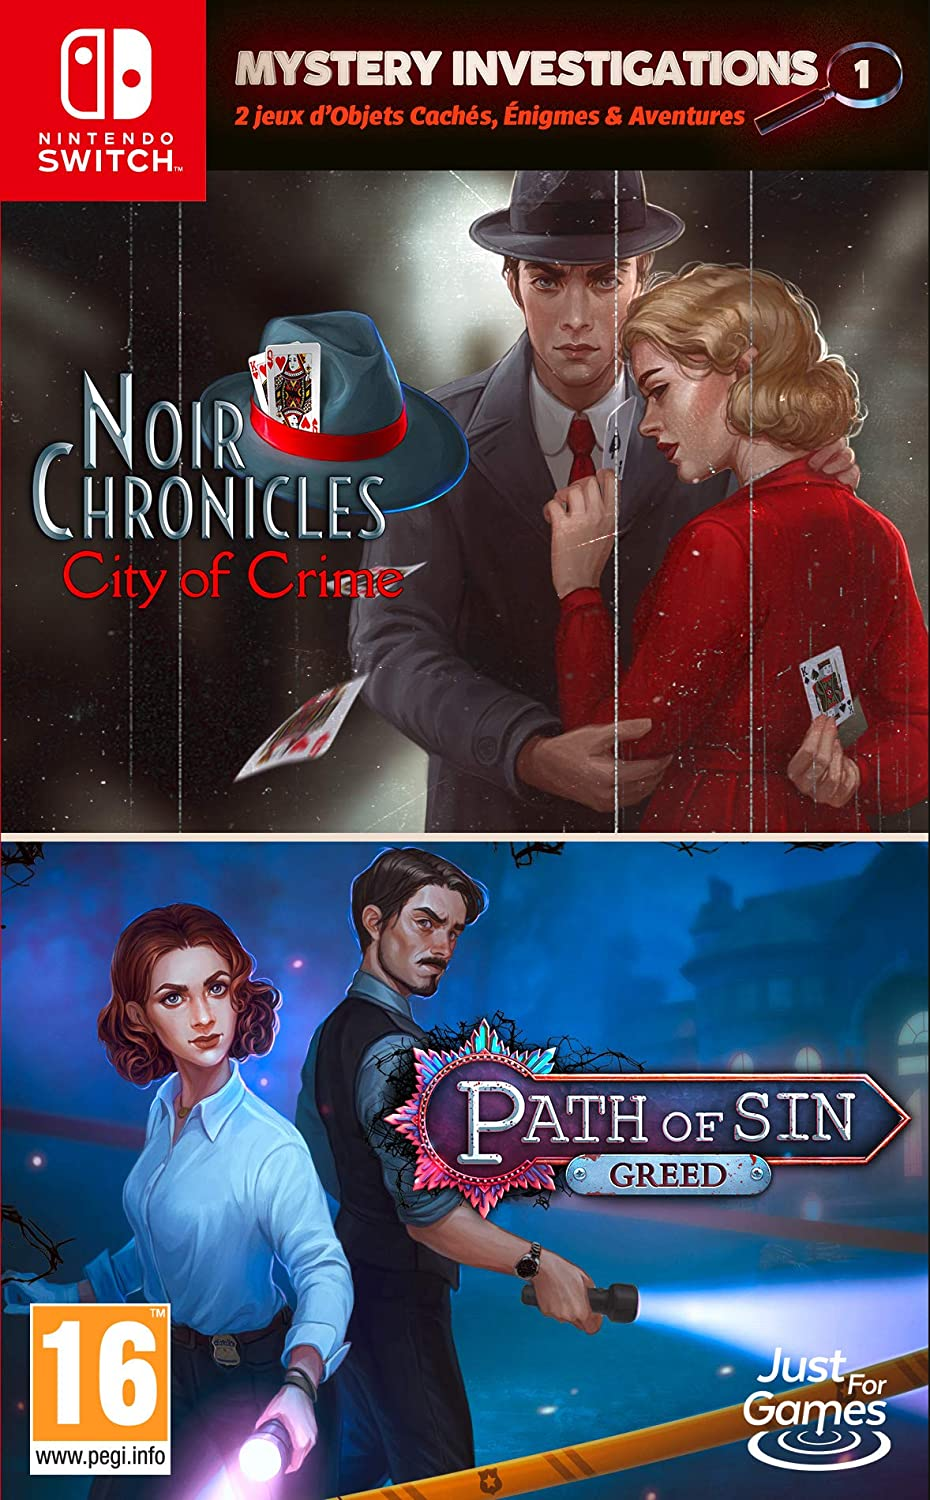 Mystery Investigations 1 - Path of Sin: Greed + Noir Chronicles: City of Crime Nintendo Switch Game: Amazon.es: Videojuegos